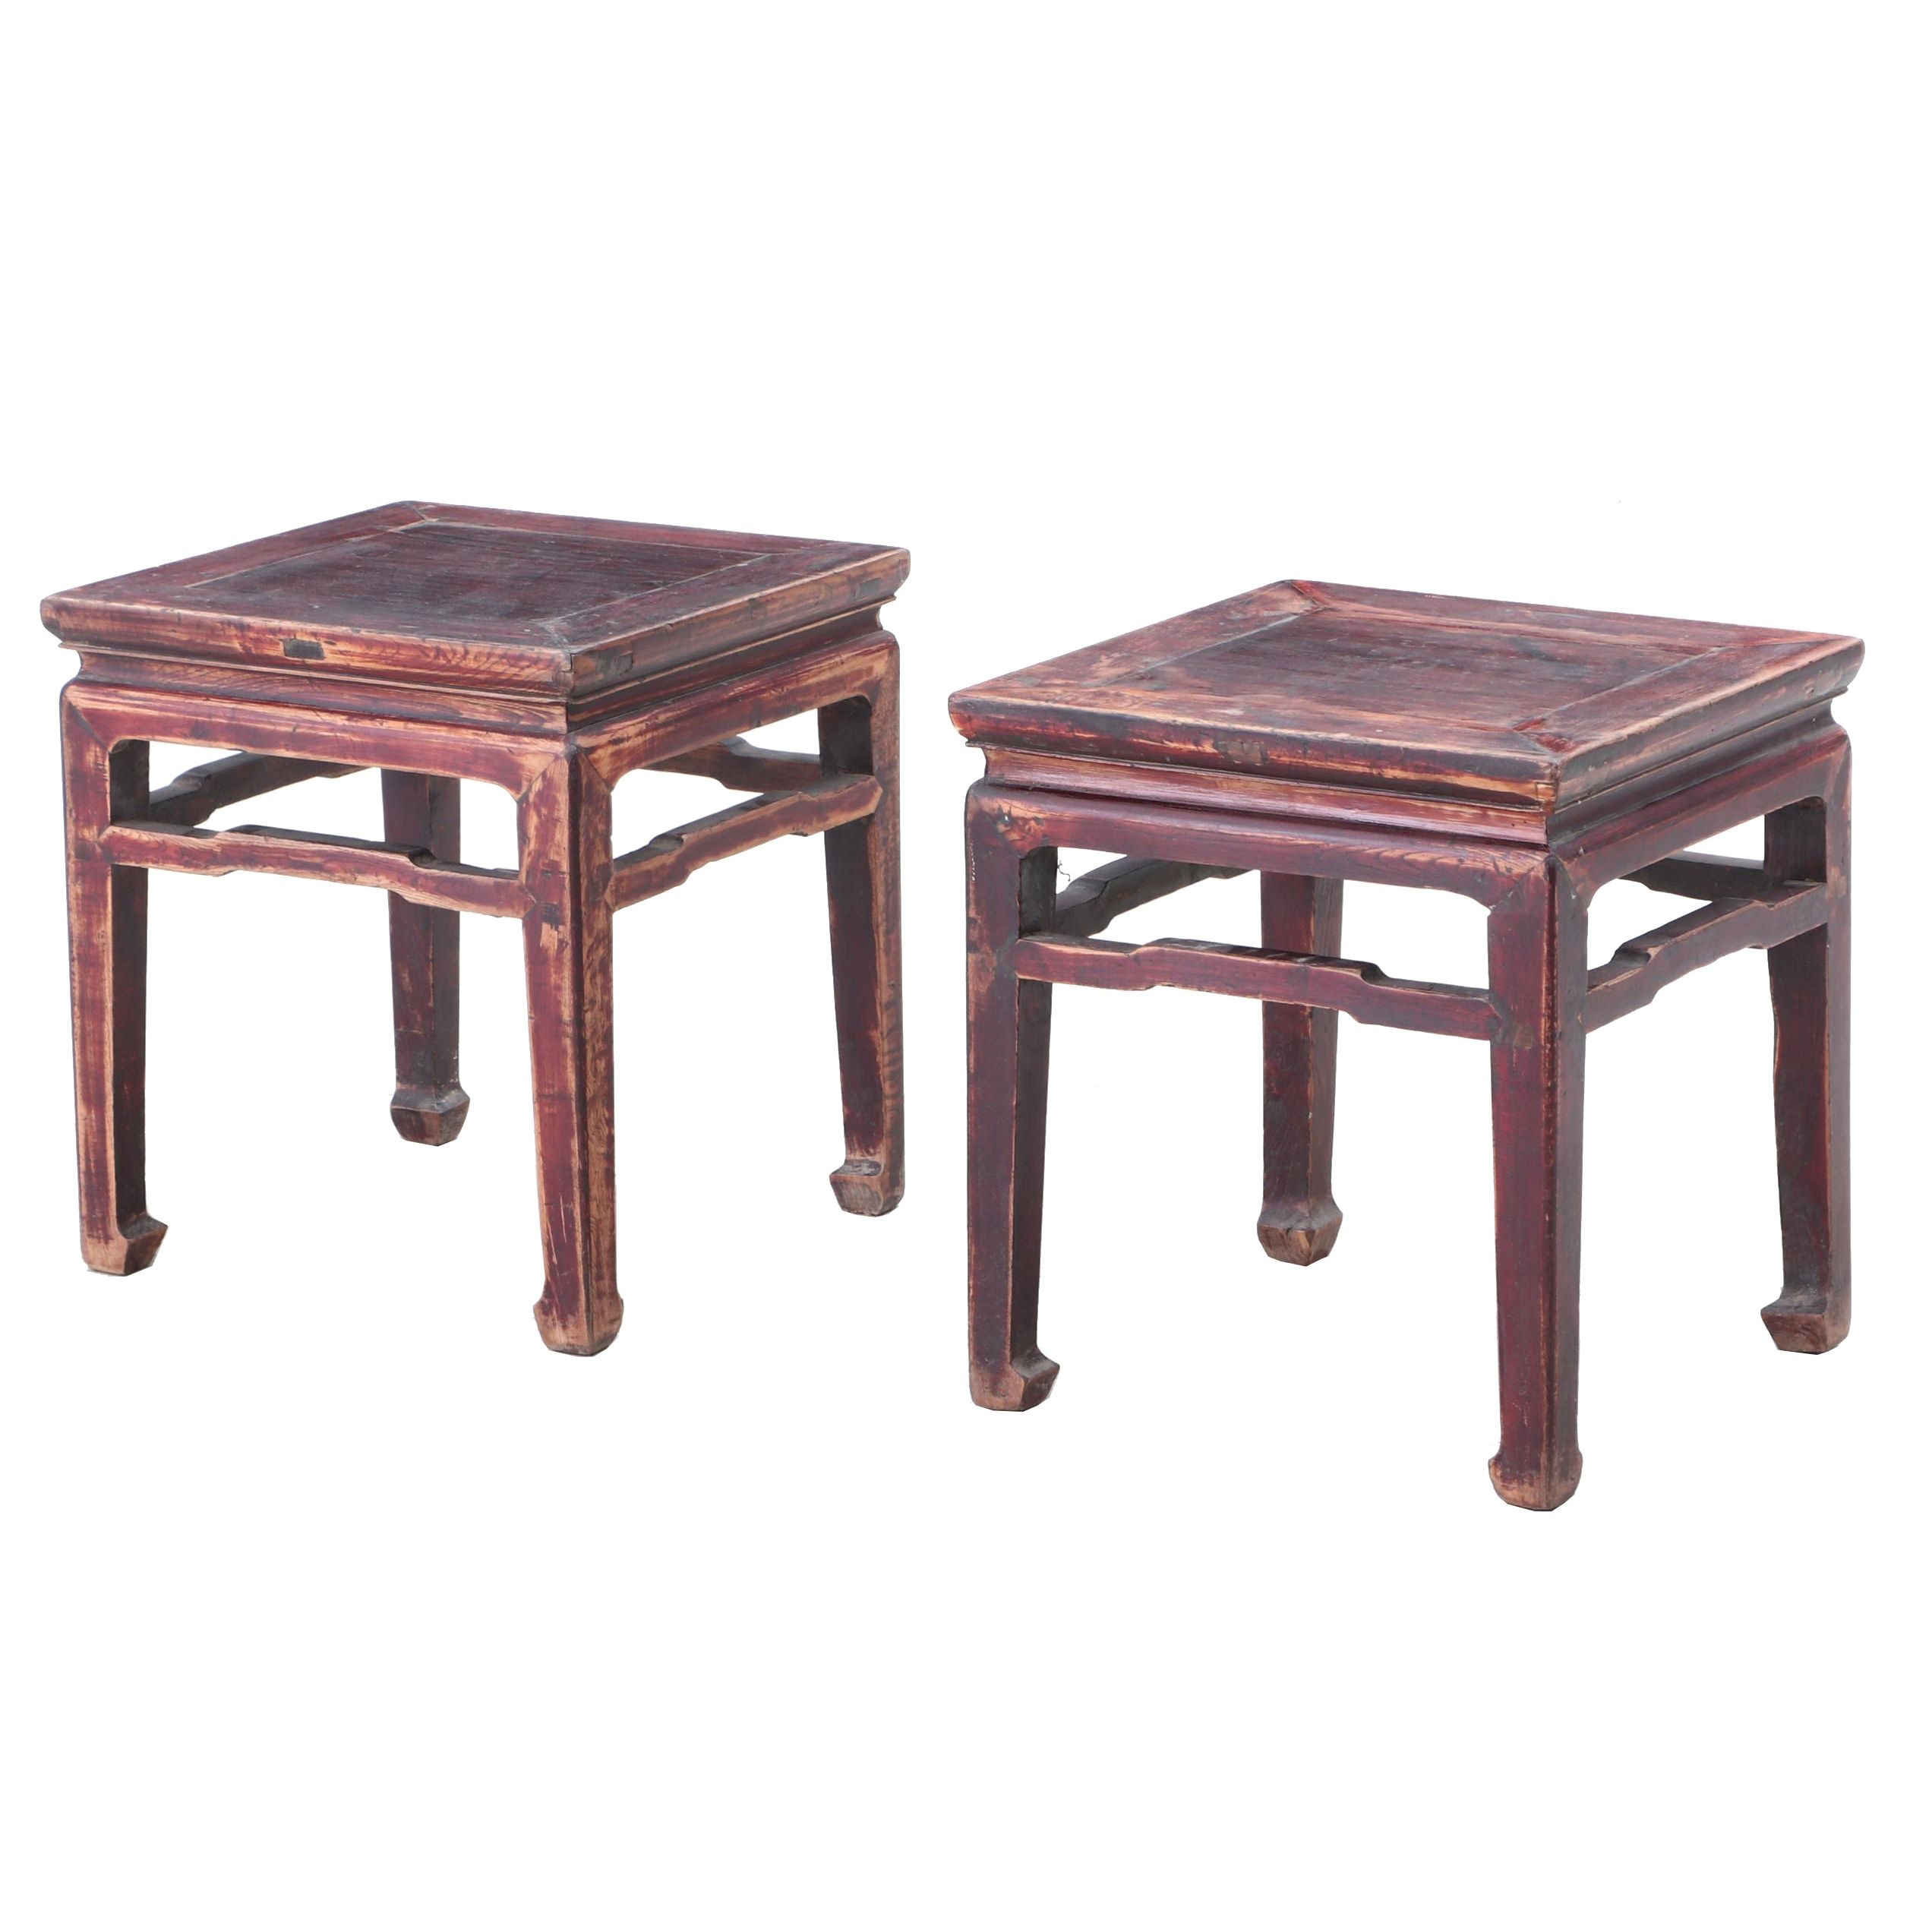 Chinese Red Washed Elm Wood End Tables, 20th Century